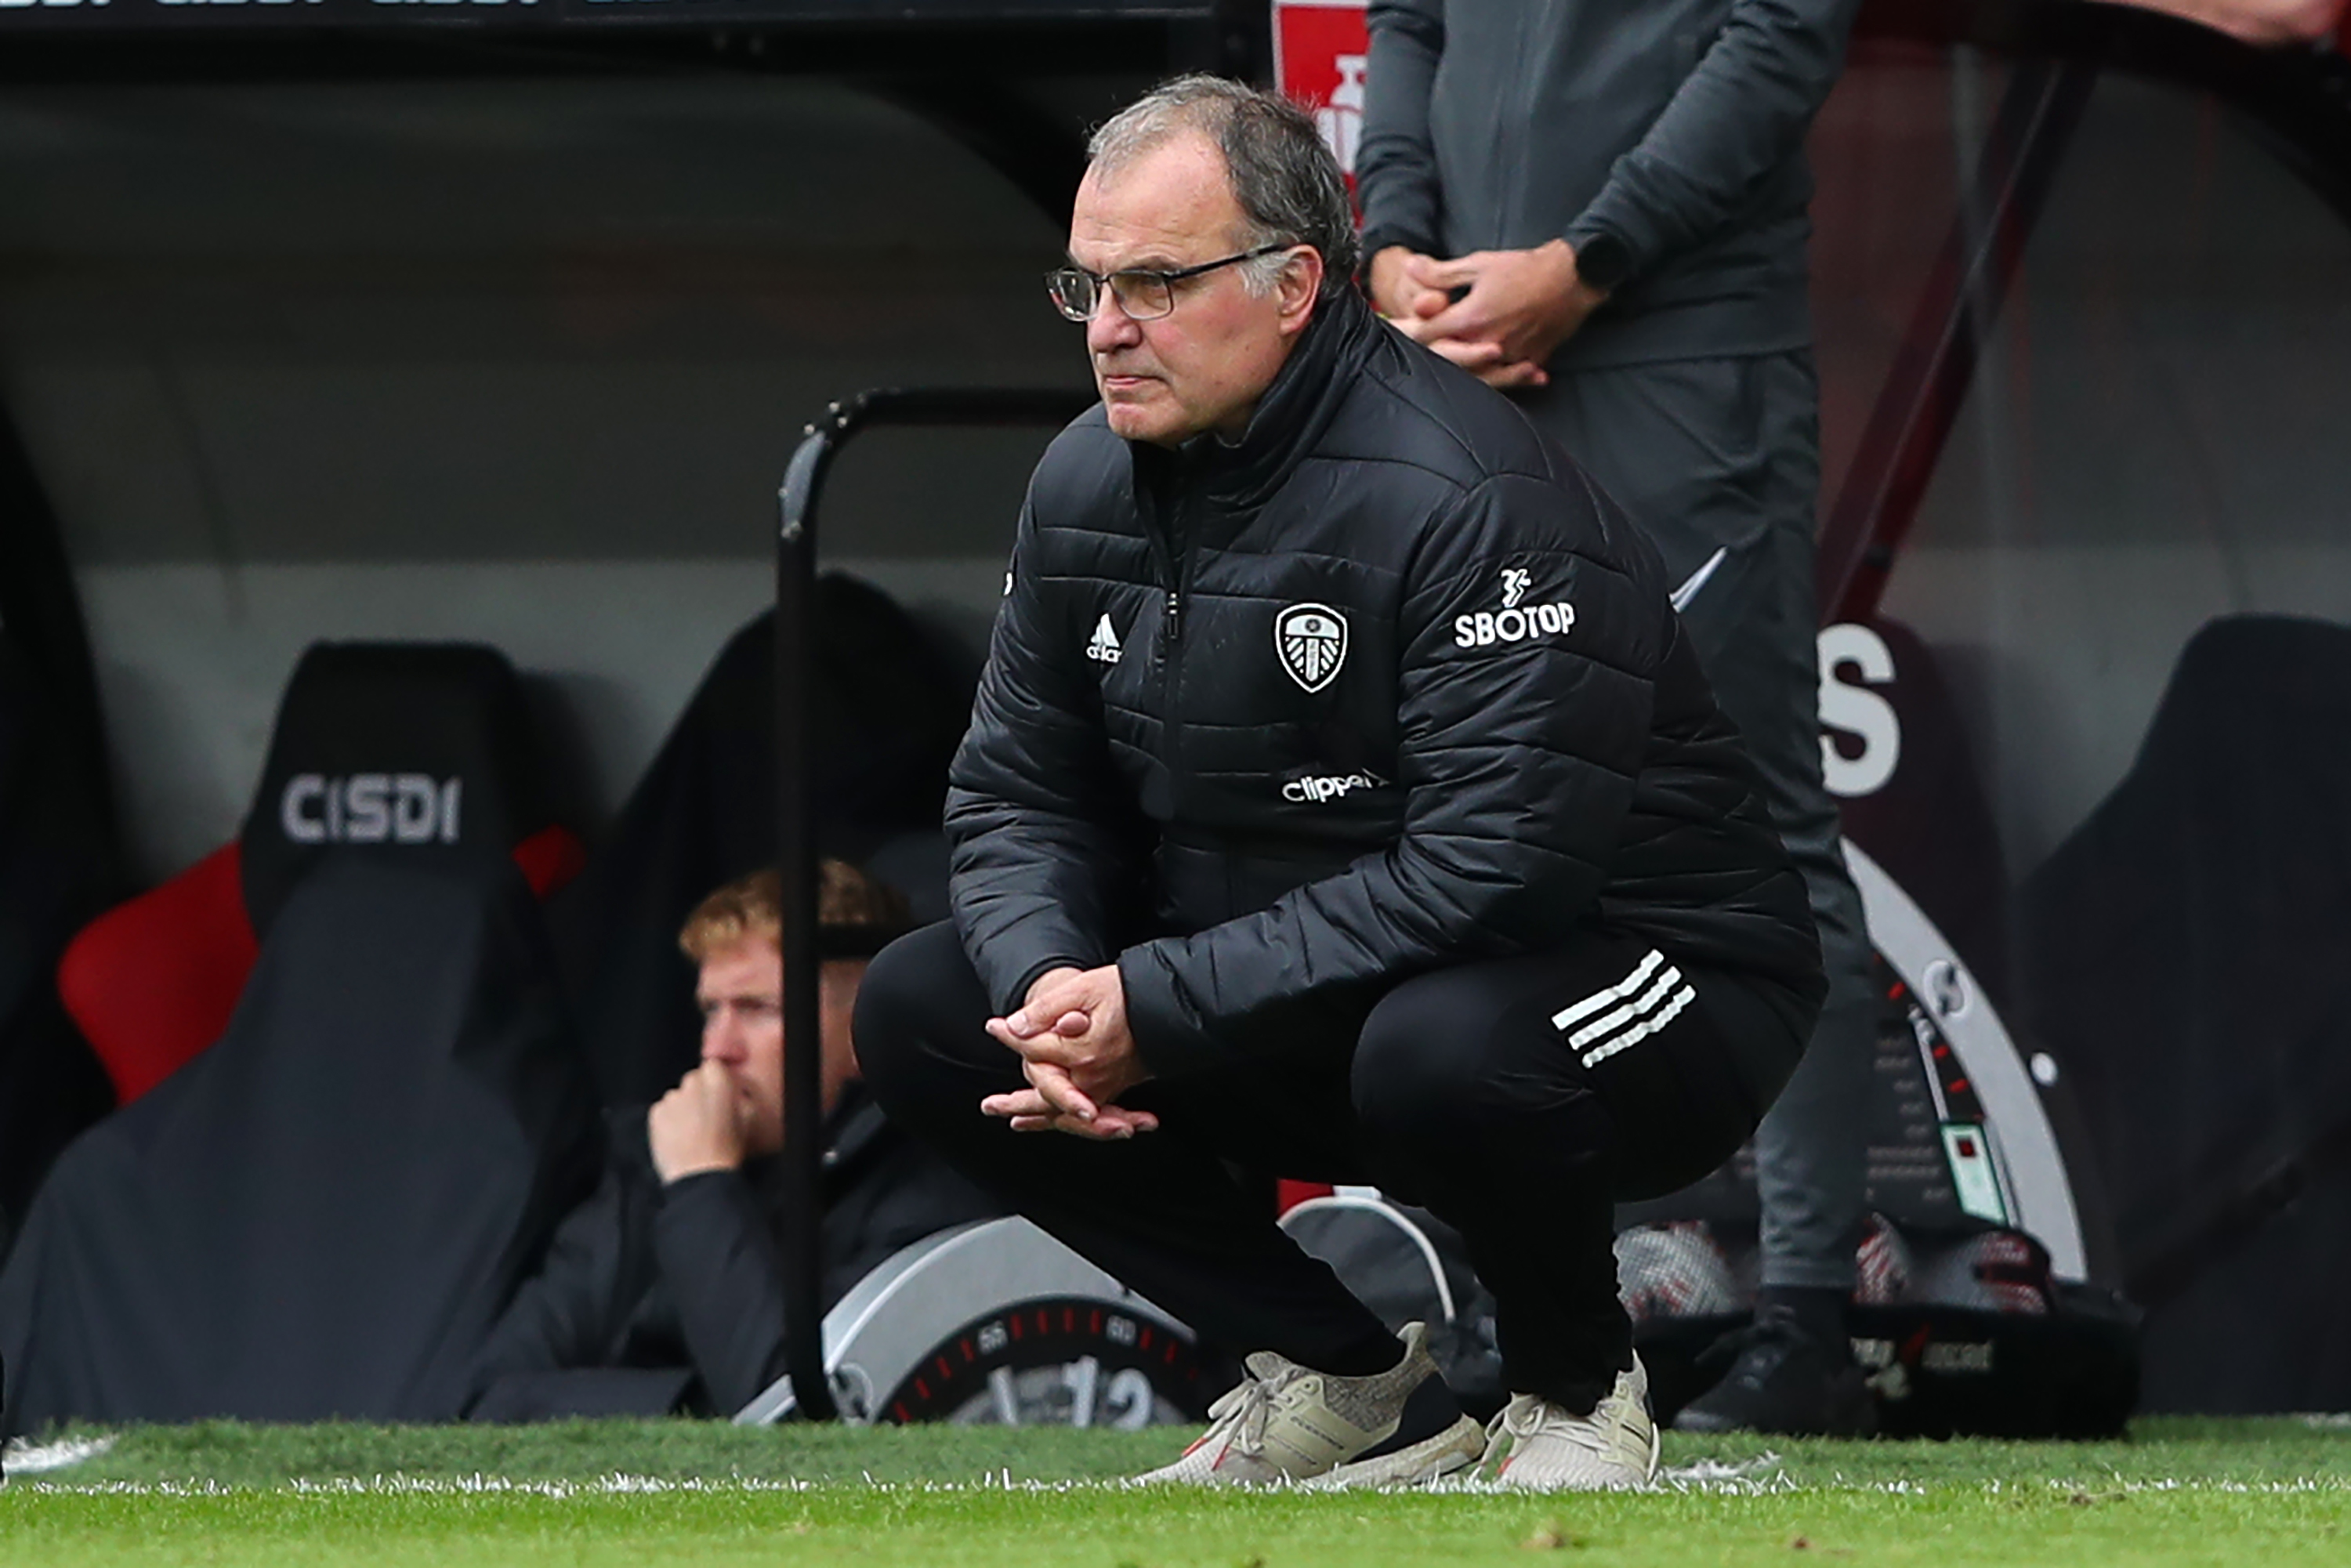 Predicted Leeds United Lineup Vs Crawley Town - Bielsa to ring in the changes.